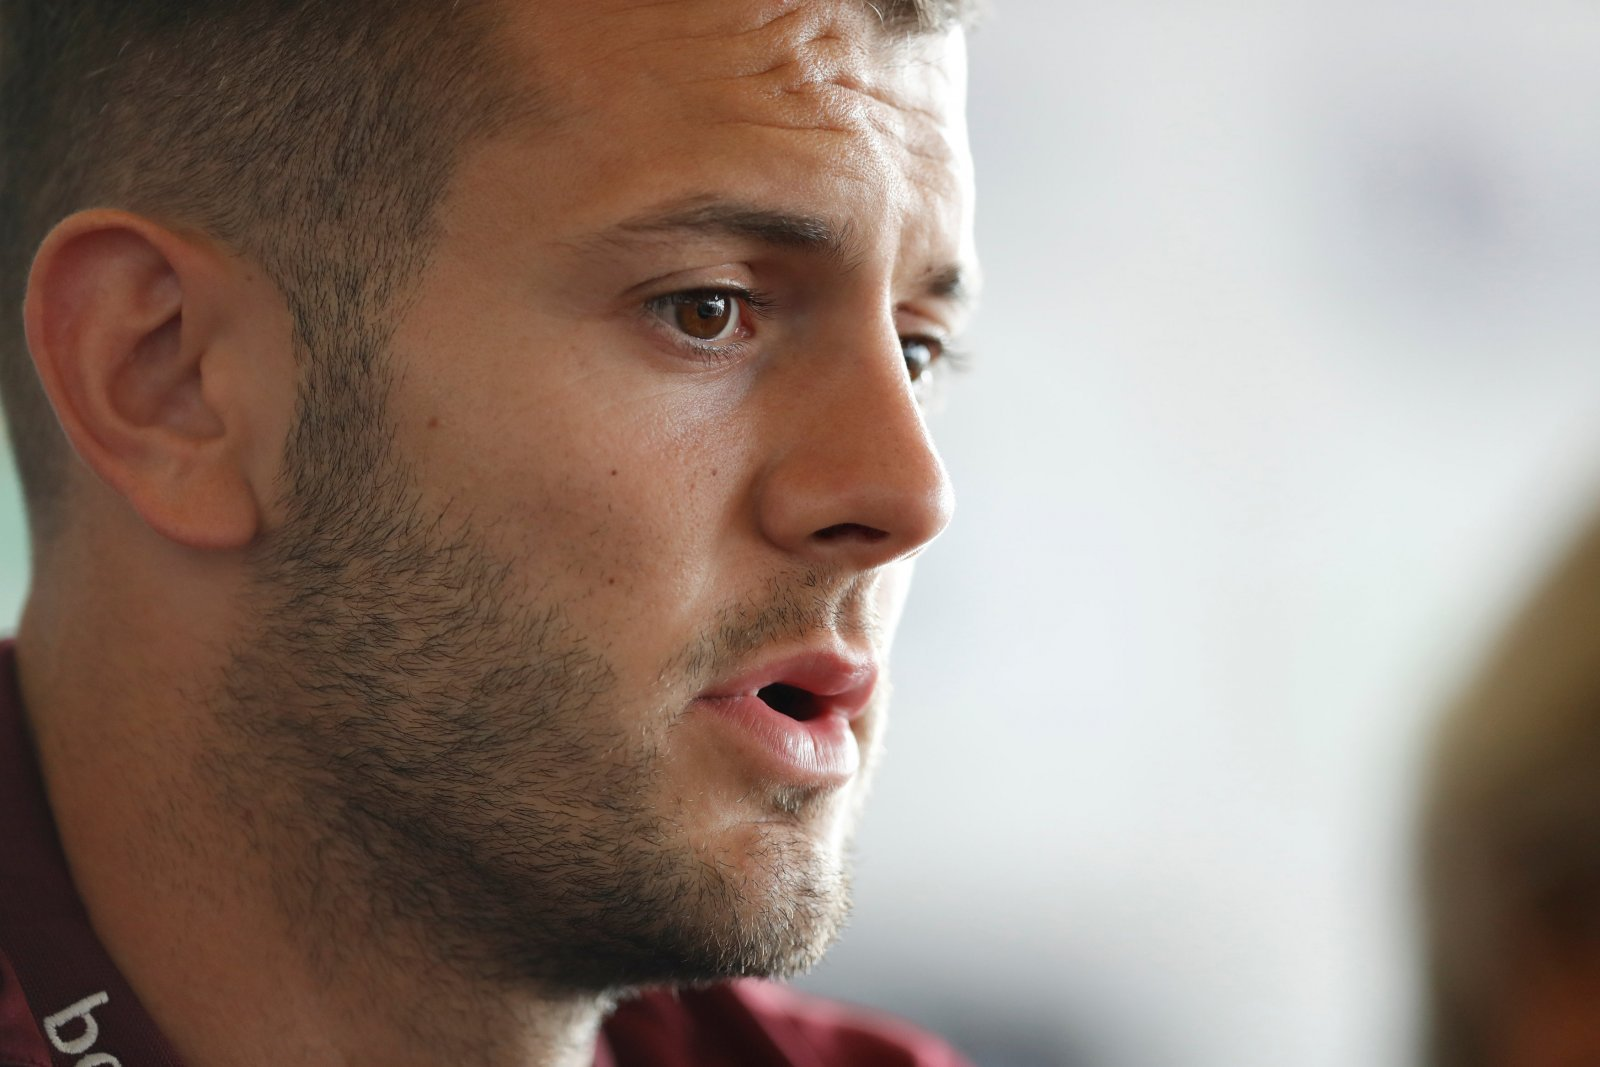 West Ham: Jack Wilshere return could set up a promising end to the season